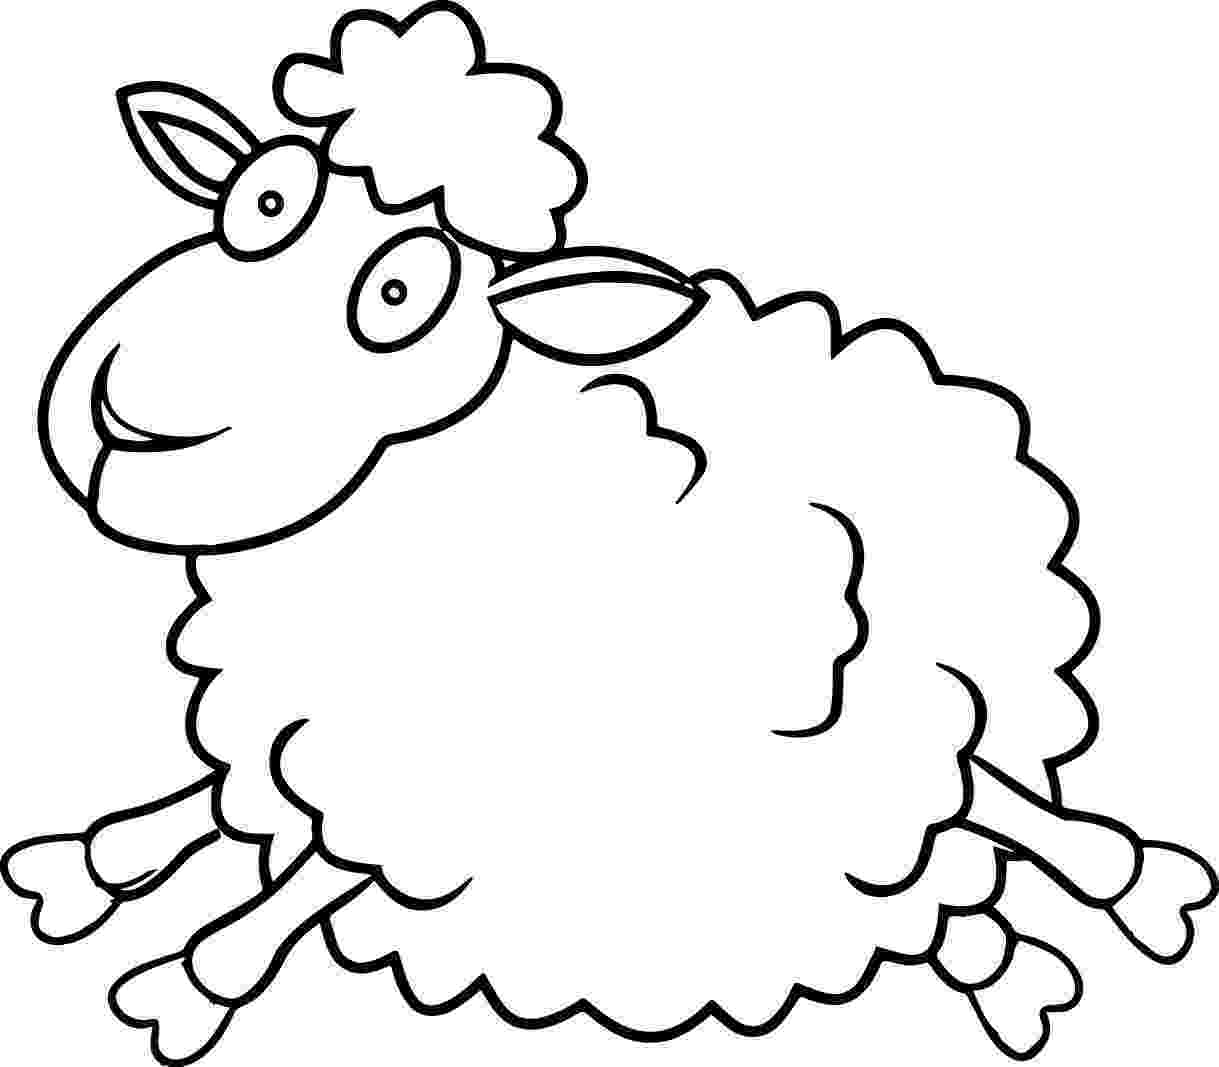 coloring book pages sheep sheep coloring pages coloring pages to download and print pages book sheep coloring